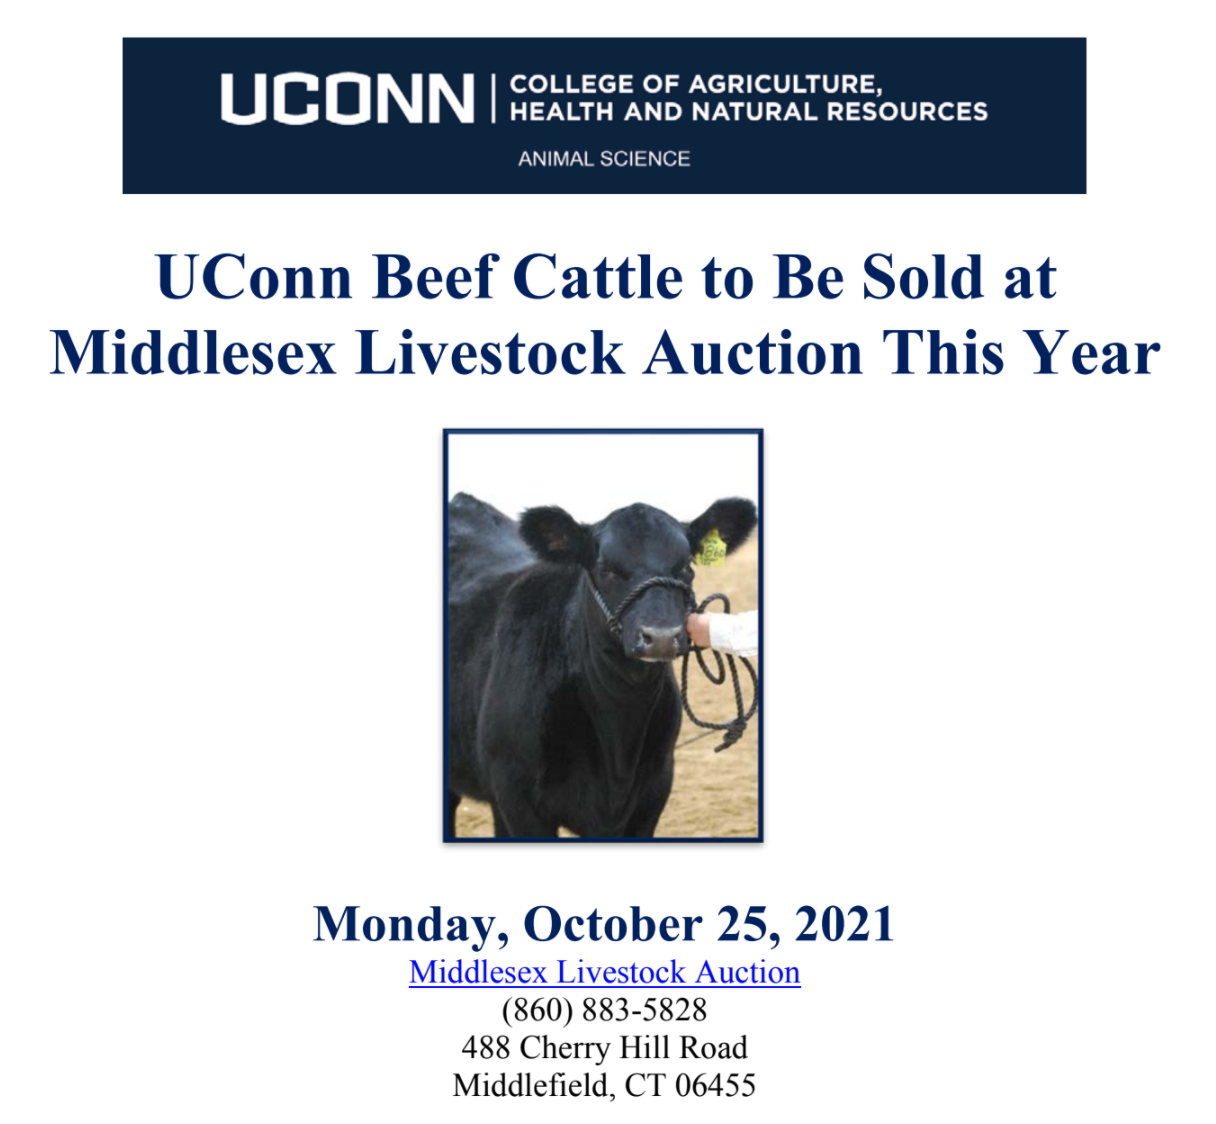 Department of Animal Science UConn Beef Cattle to be Sold at Middlesex Livestock Auction